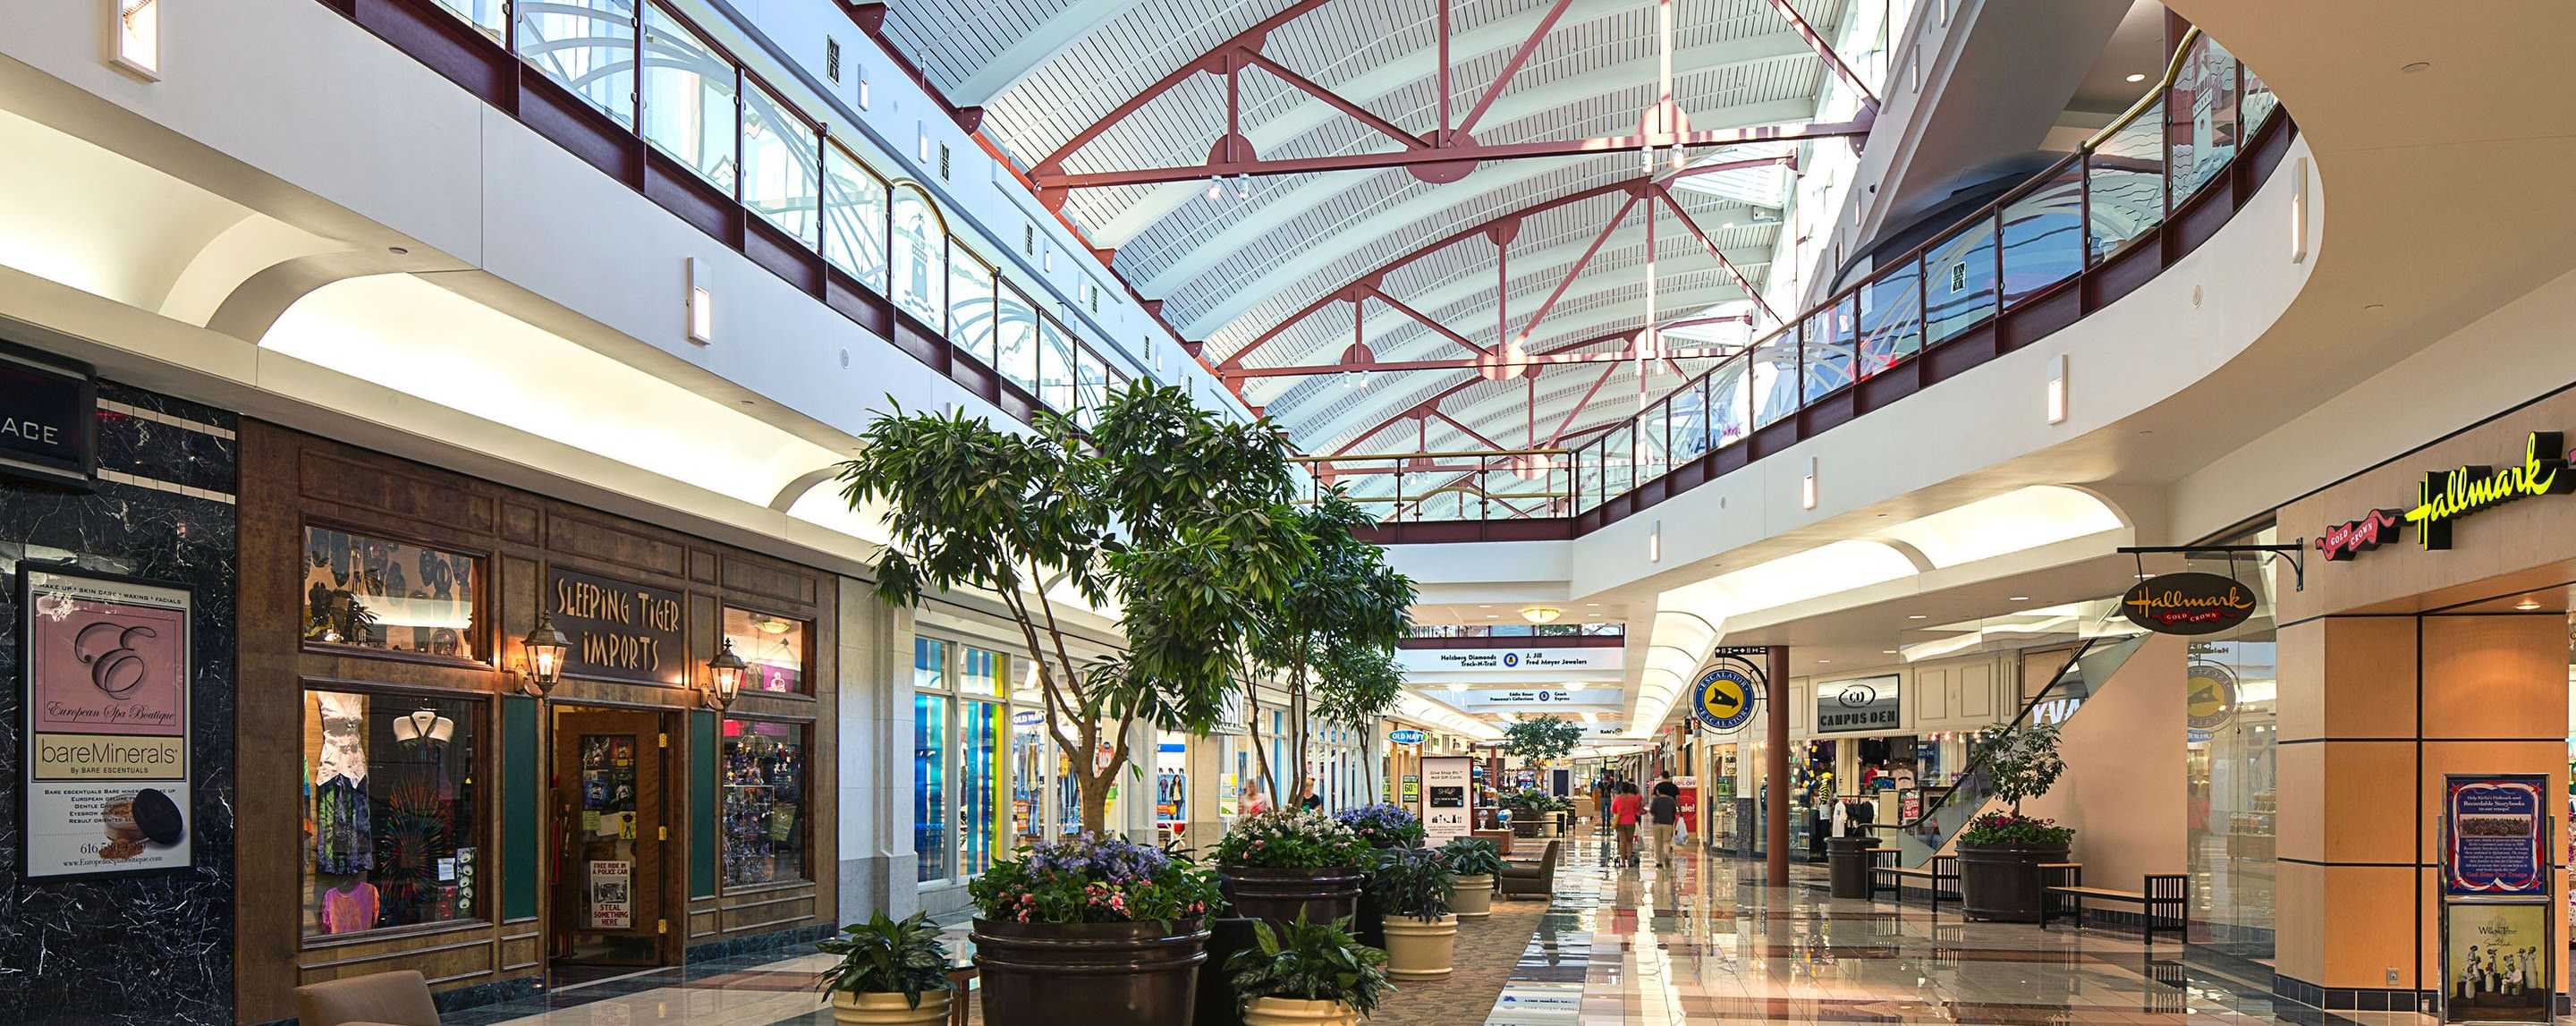 An empty indoor mall with an open ceiling and potted plants. Hallmark, Sleeping Tiger, and Old Navy locations are present.